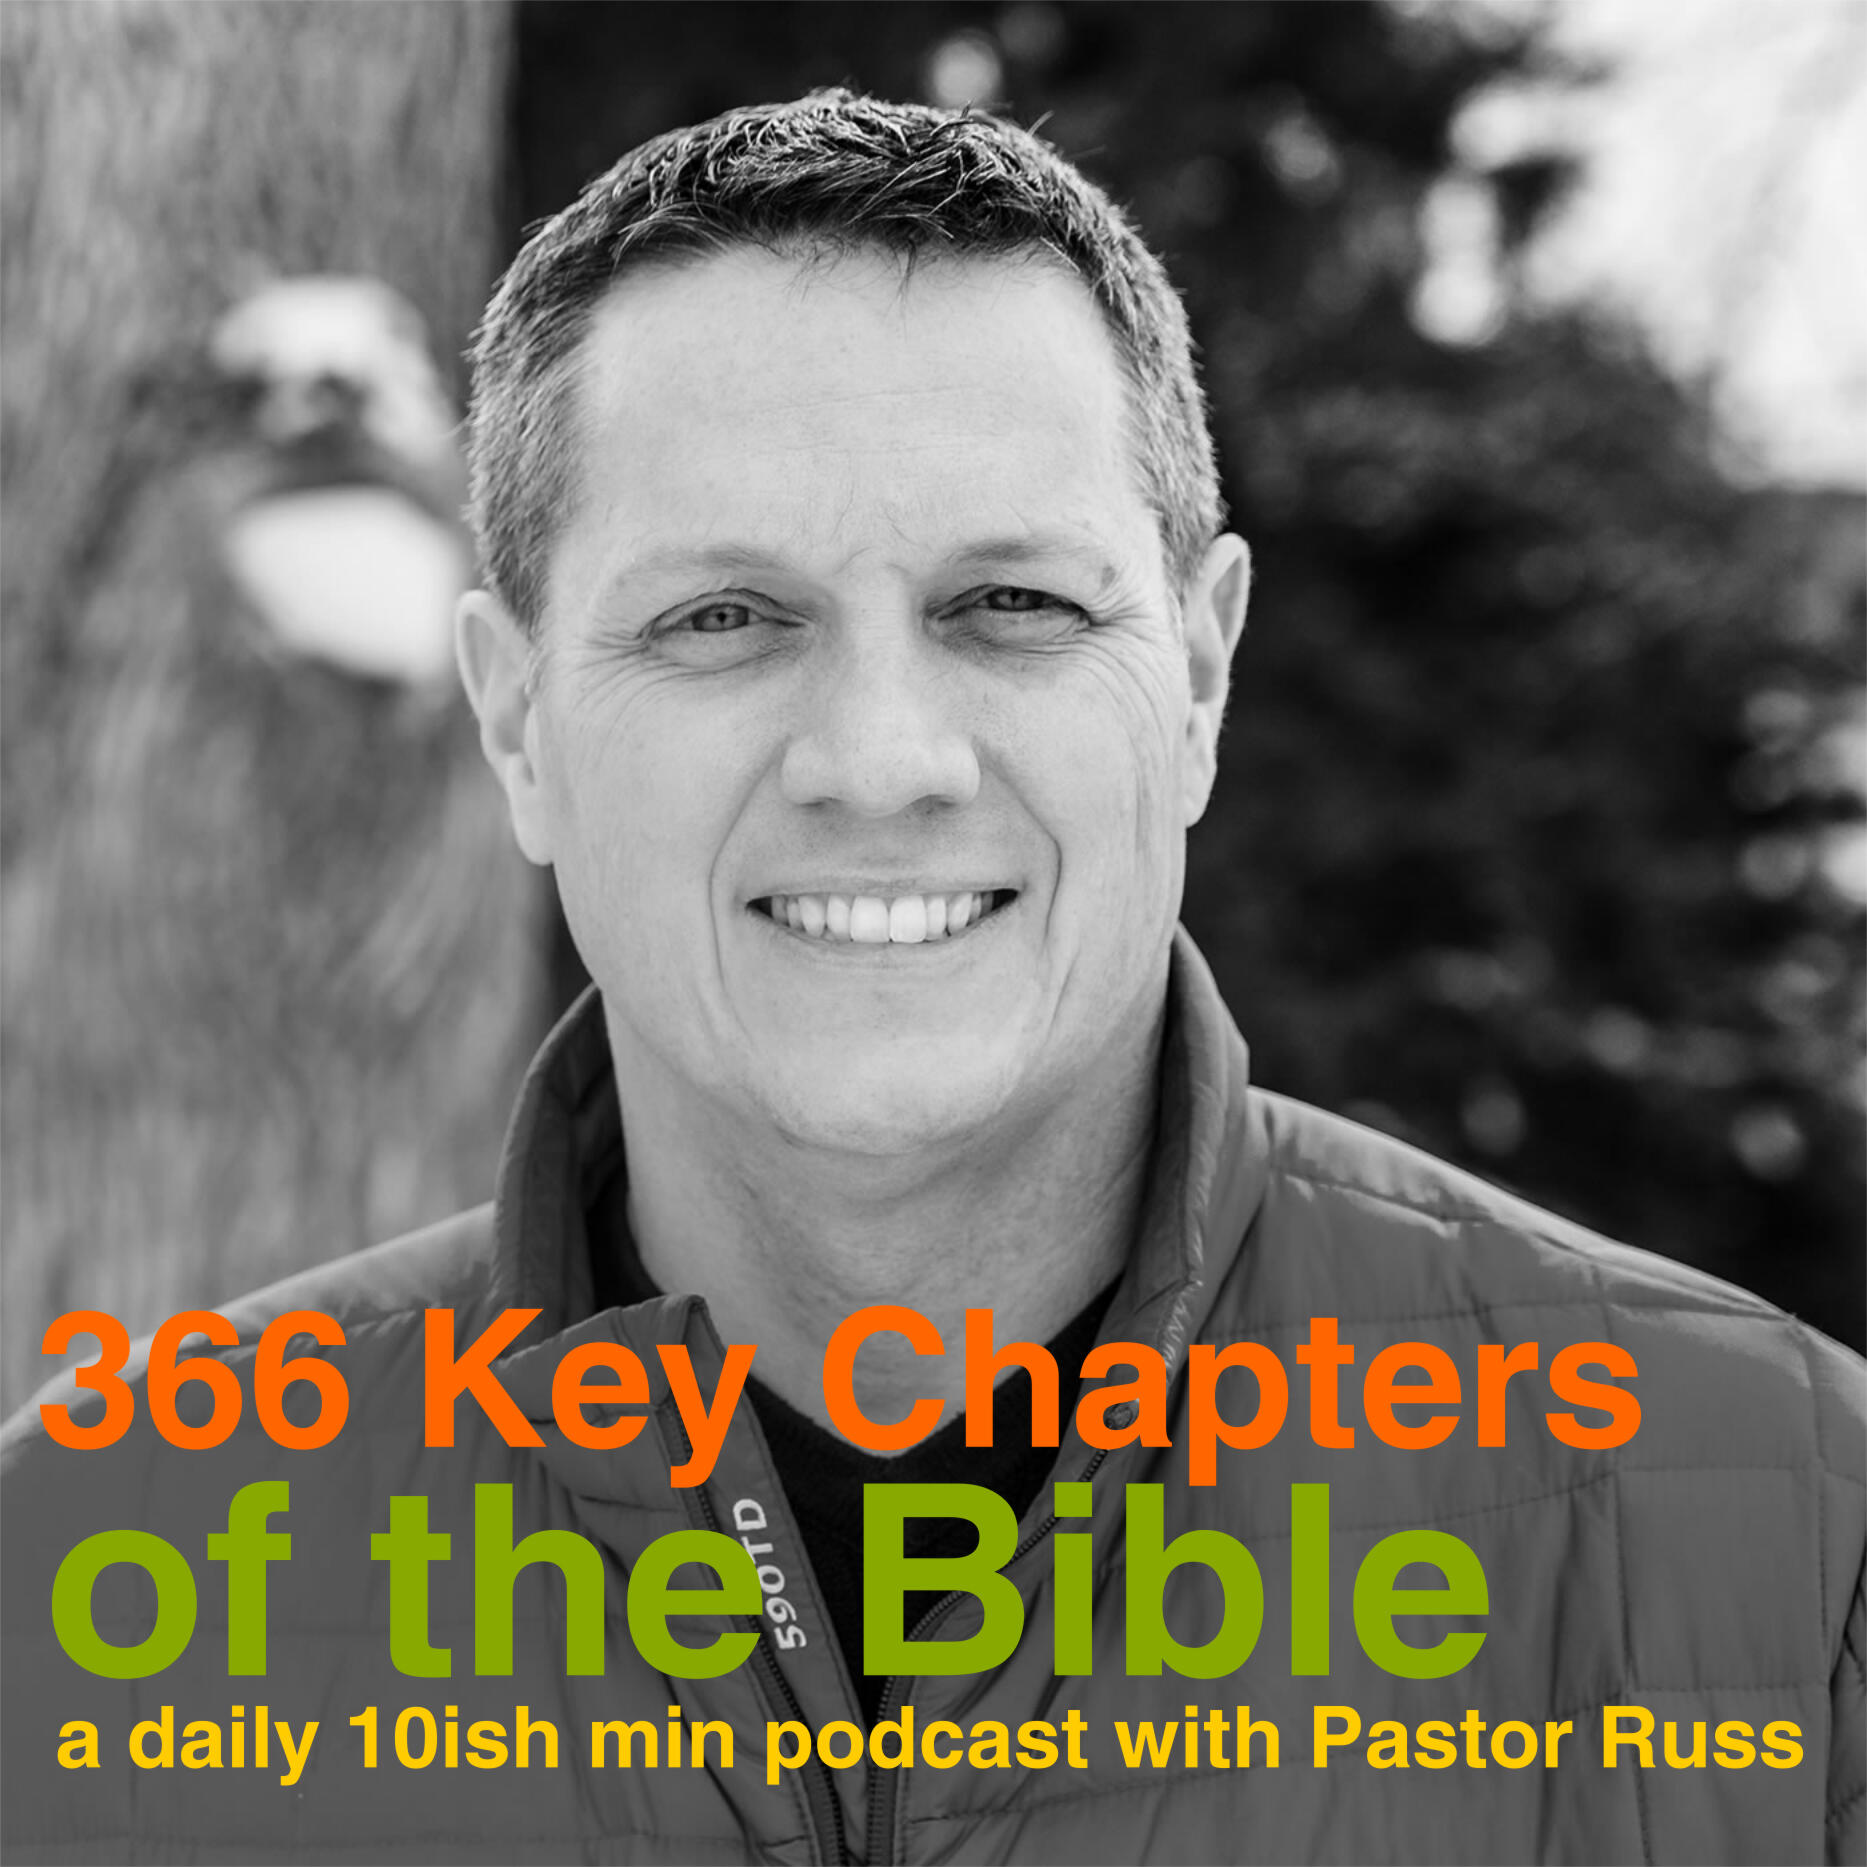 366 Key Chapters in the Bible